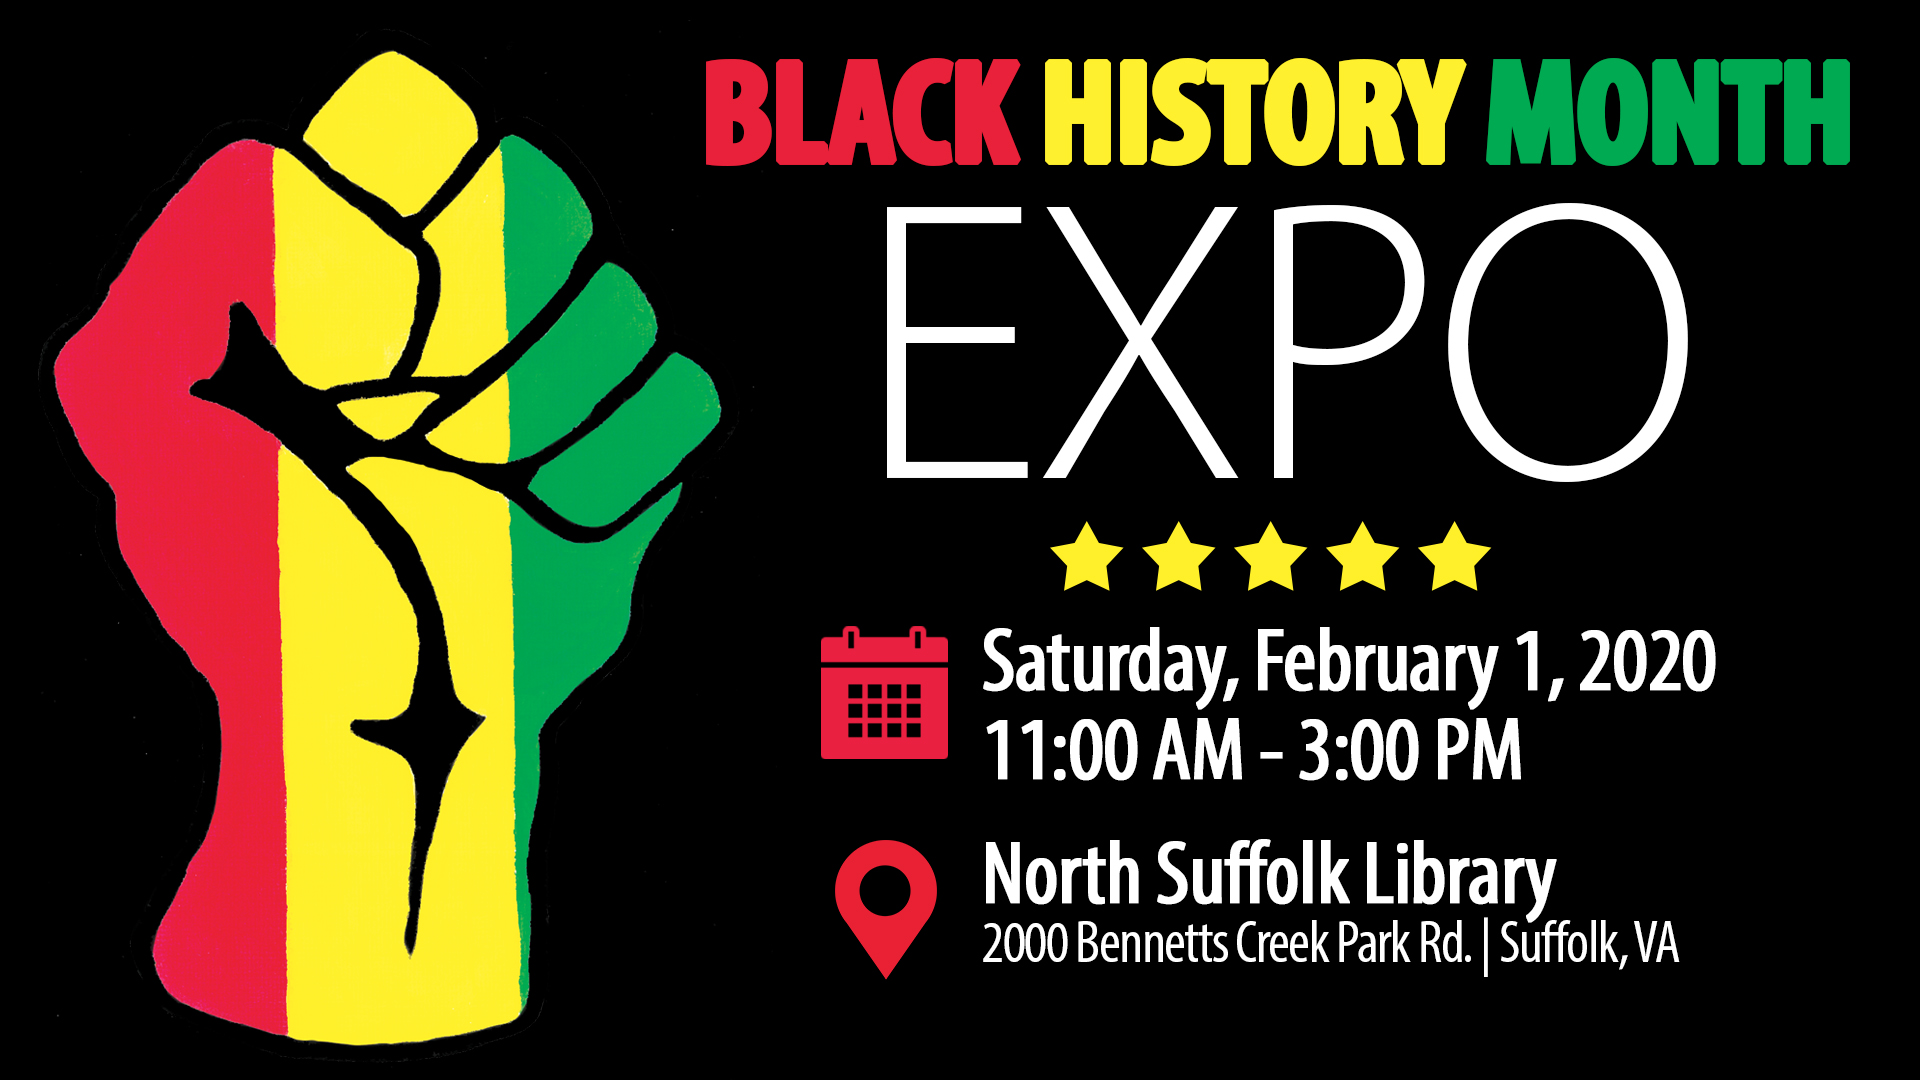 Black History Month Expo